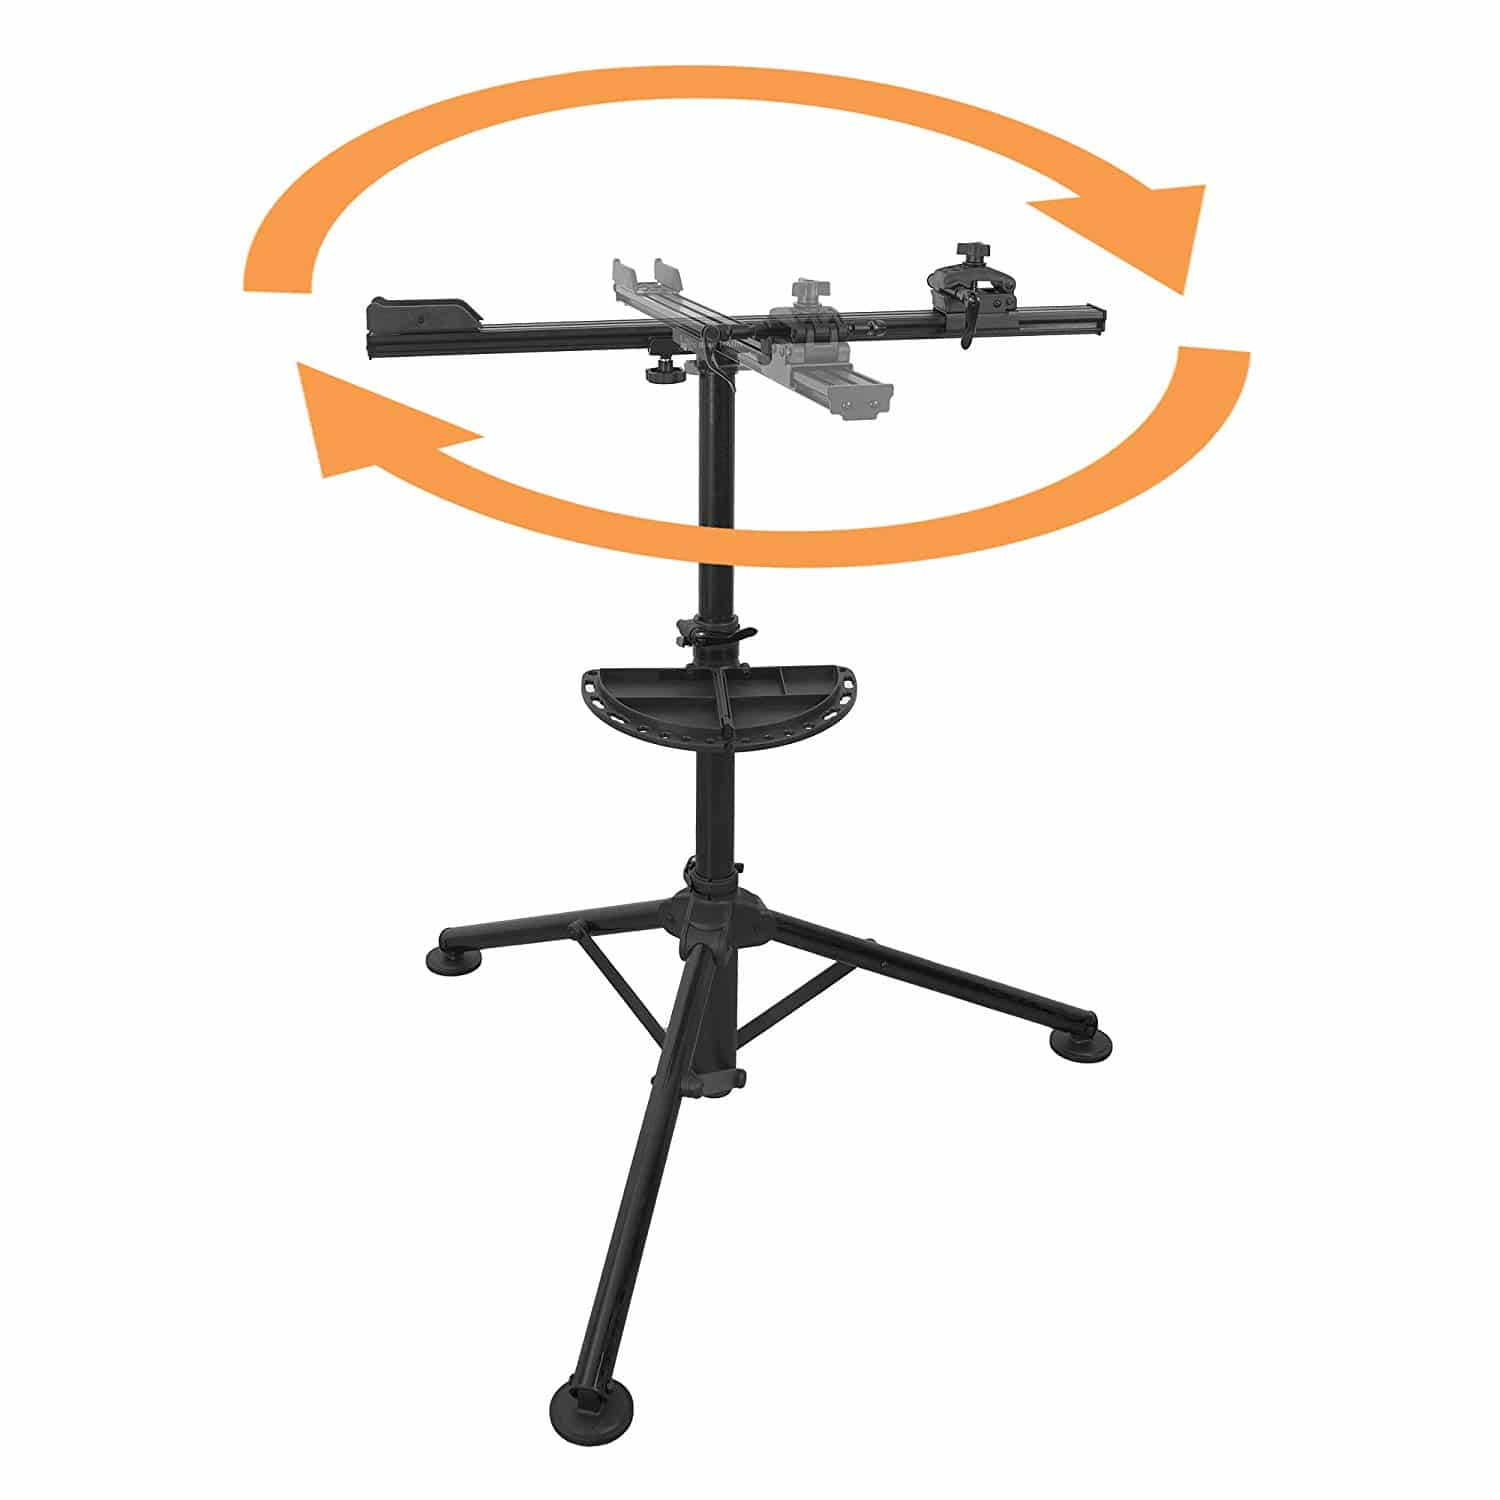 BIKEHAND Bicycle Repair Mechanics Workstand -for Home or Professional Team Use - Mountain or Road Bike Maintenance with Plate Tools Holder - Aluminum Pro Sports